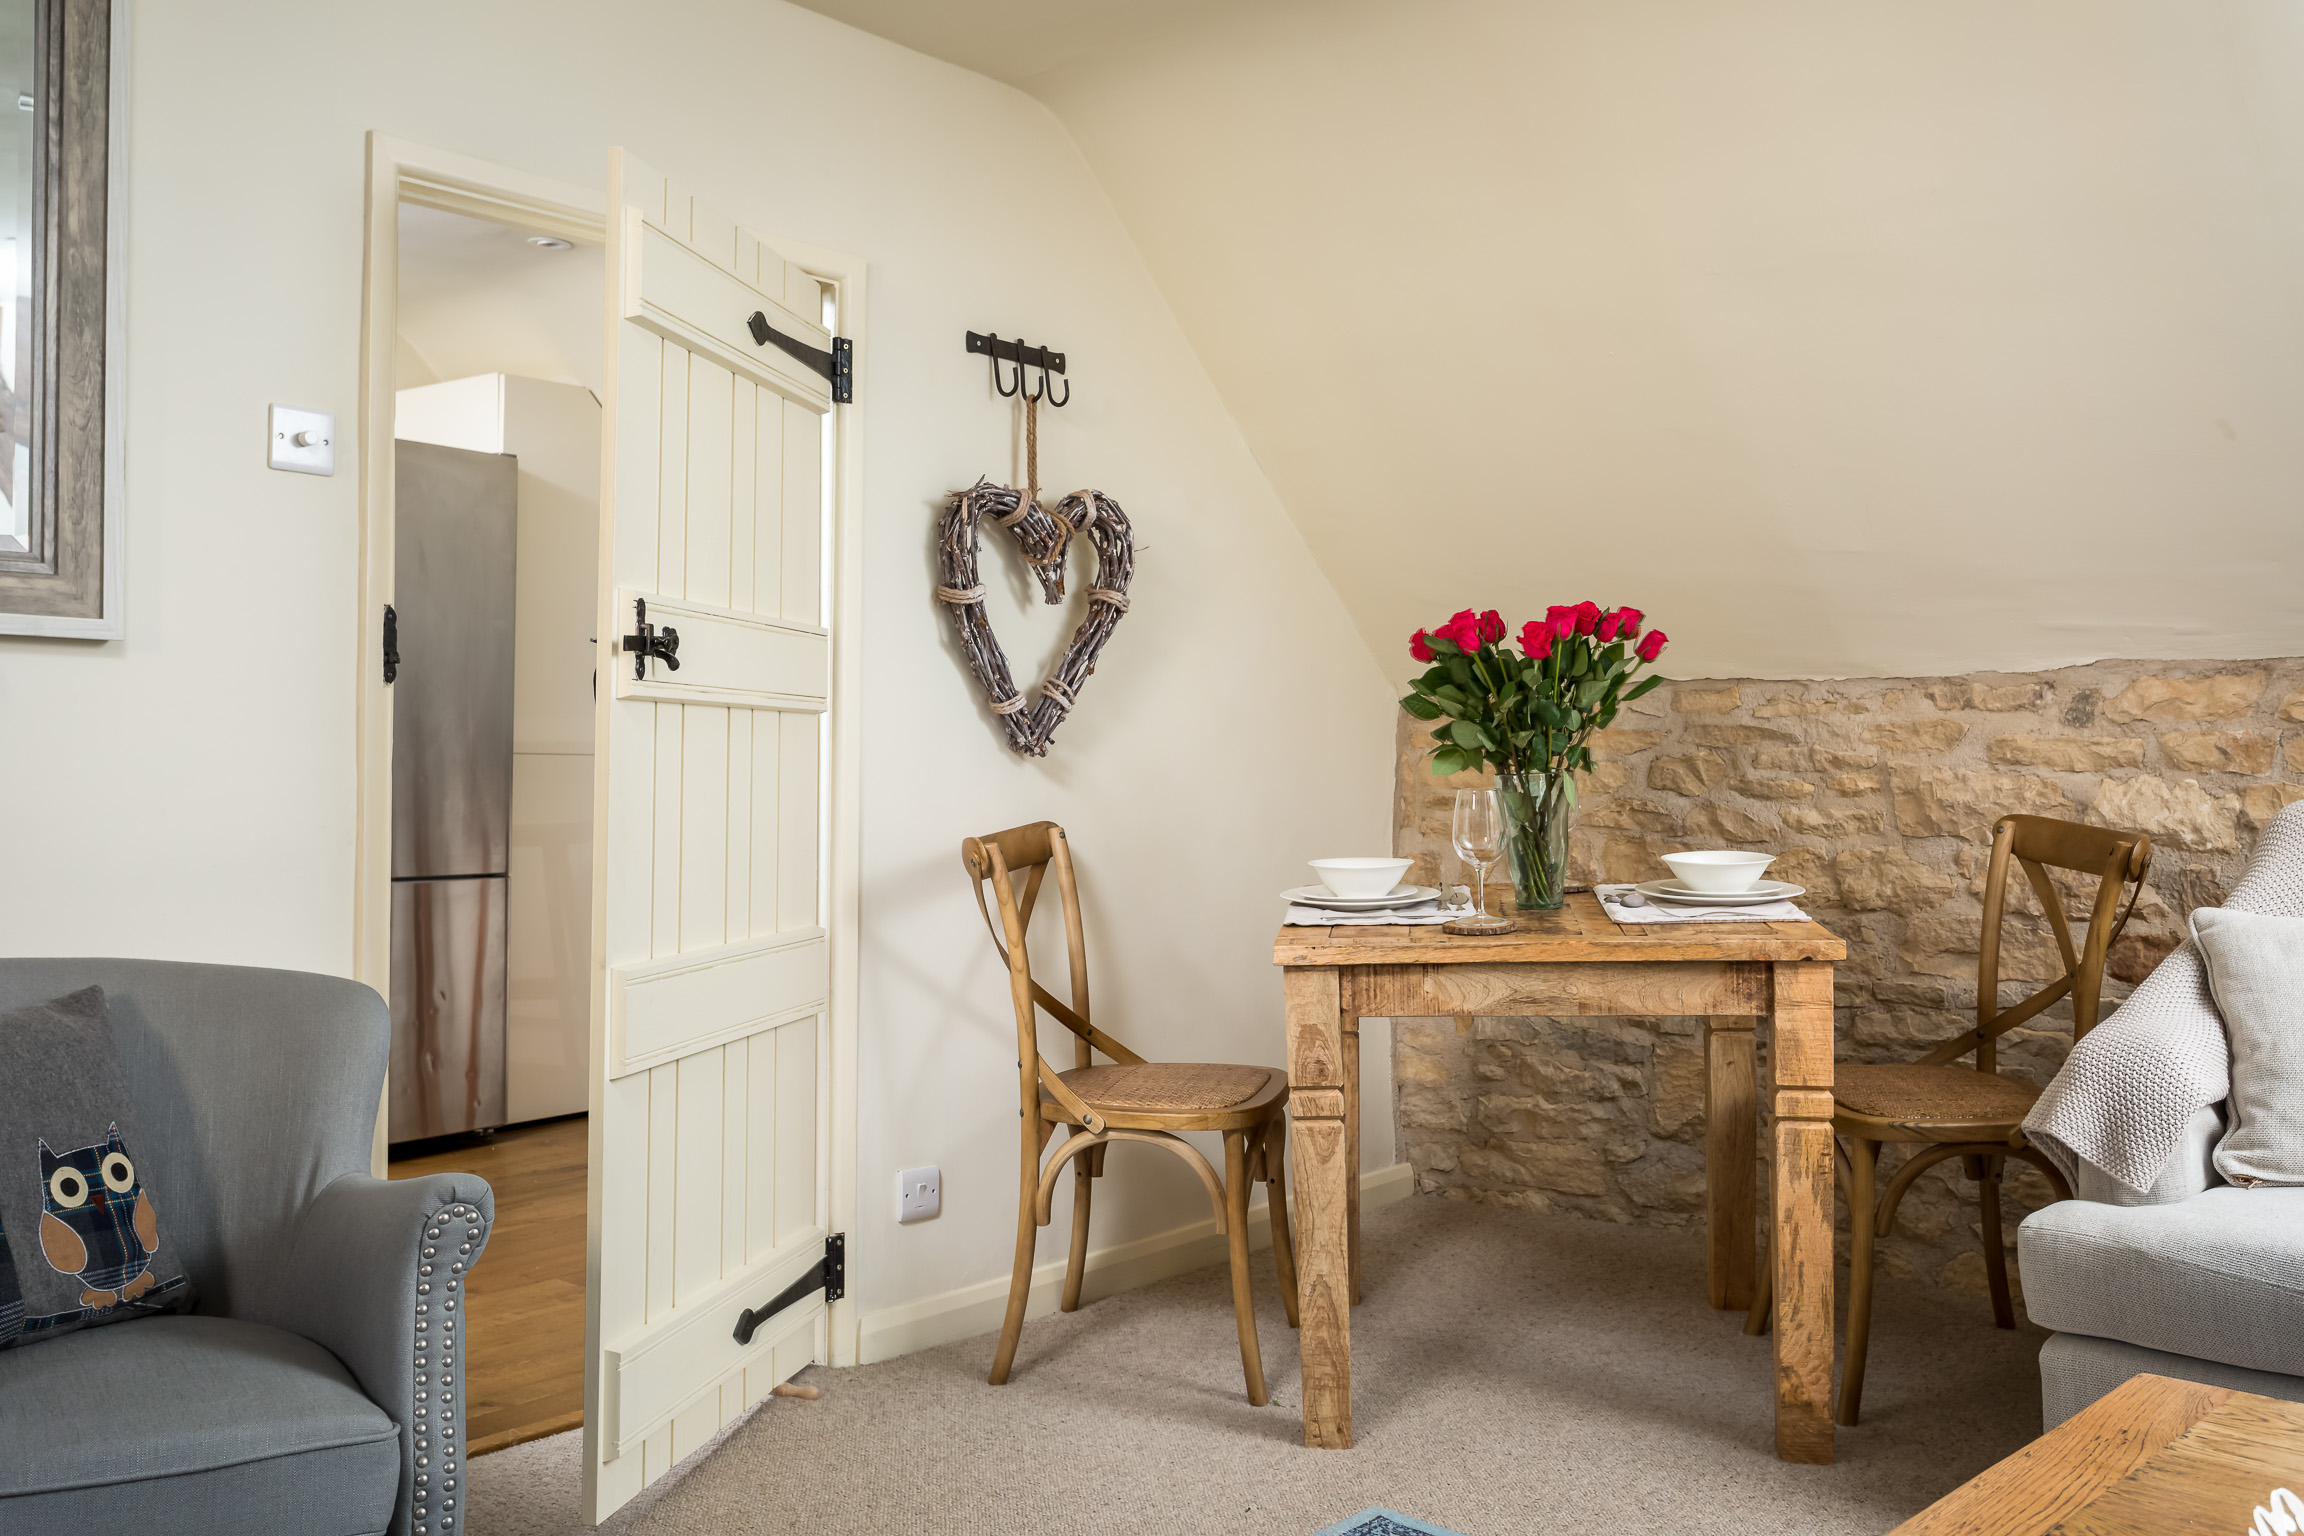 13 - The Loft - Stow-on-the-Wold - L Web.jpg